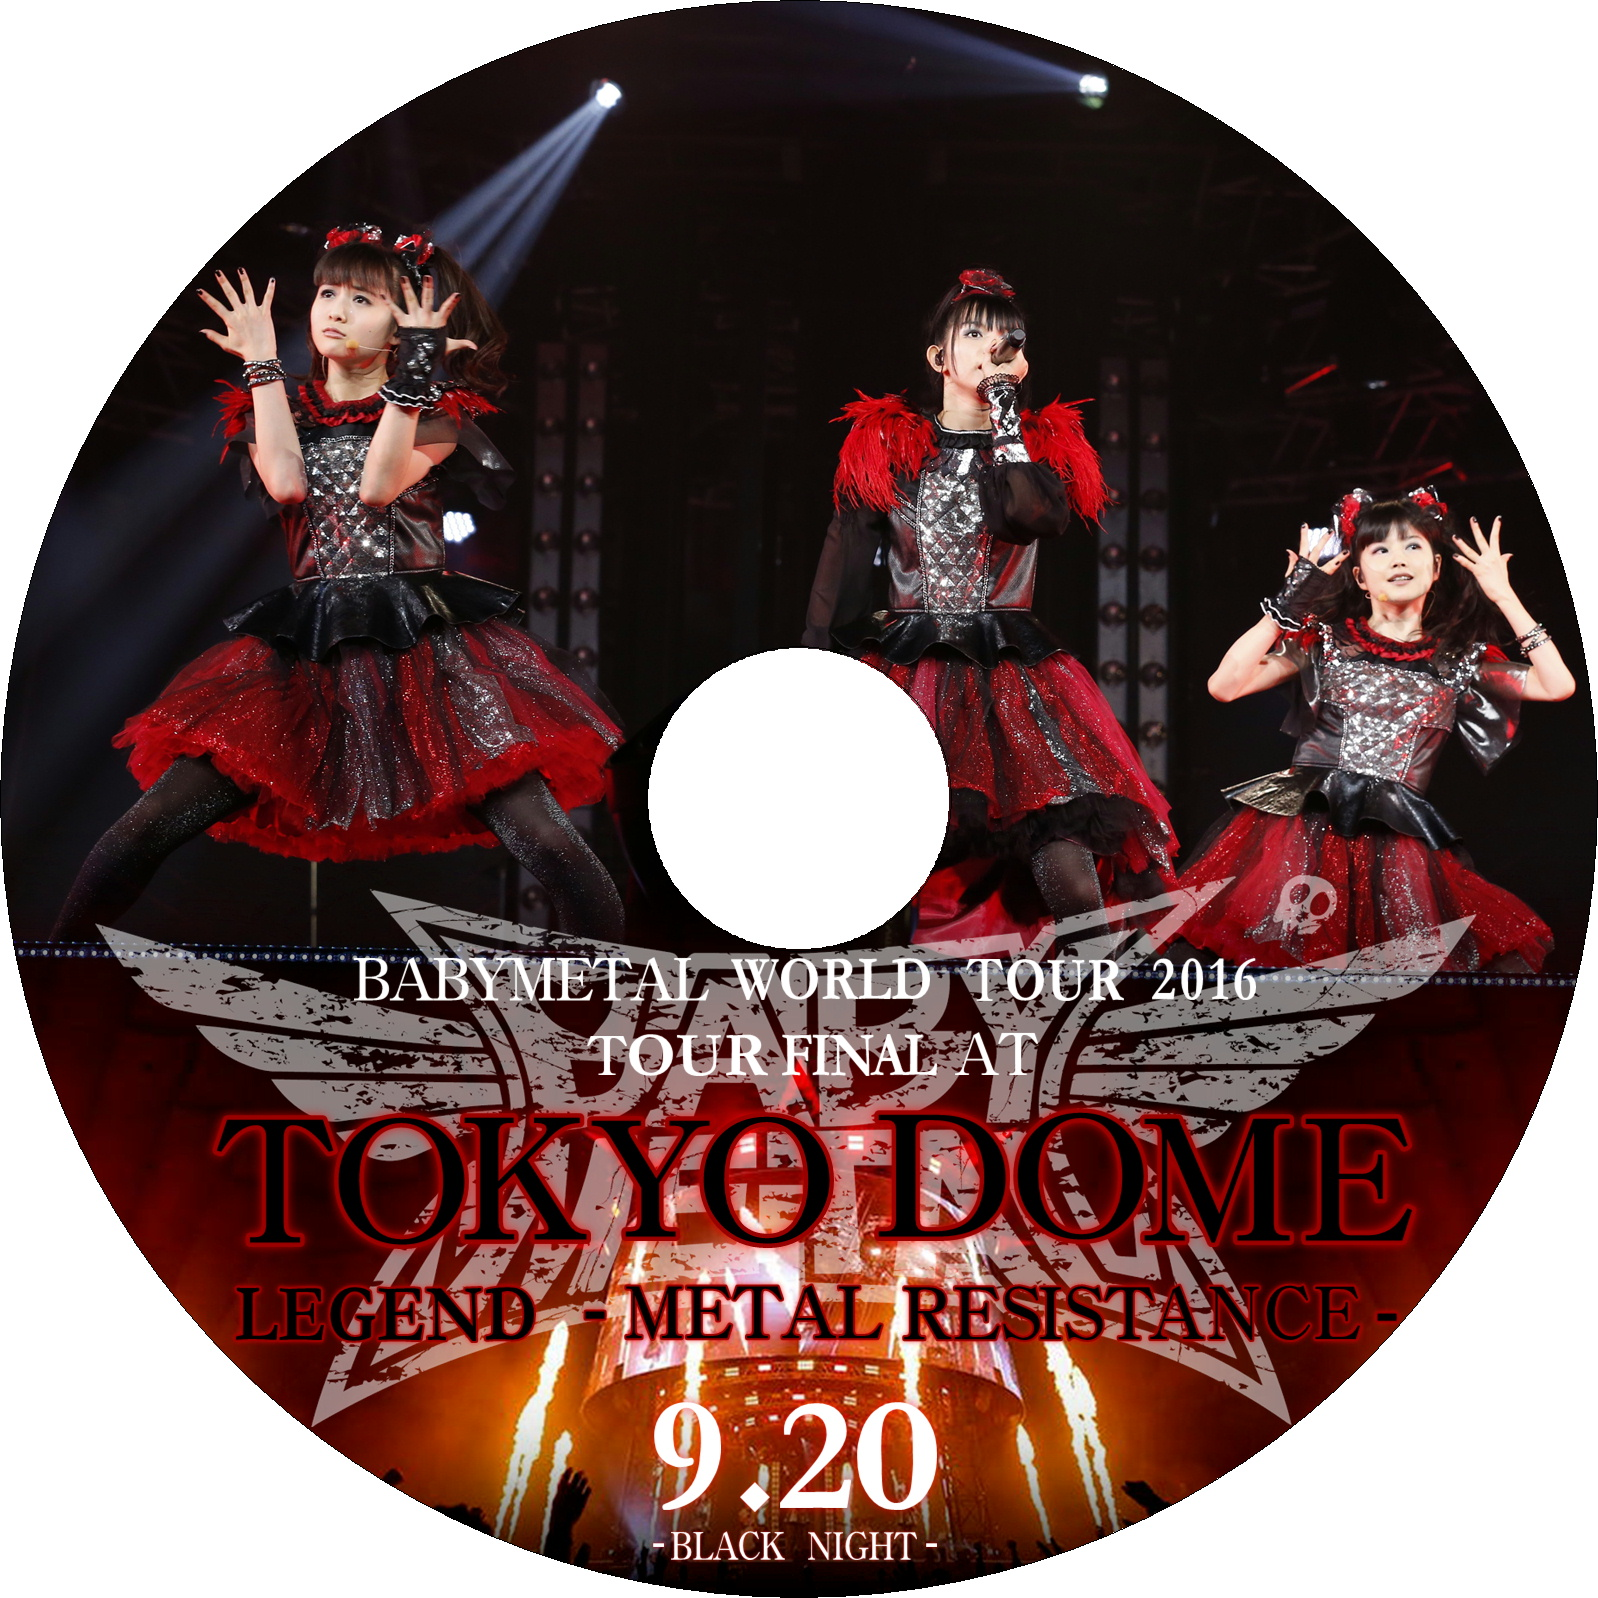 BABYMETAL WORLD TOUR 2016 LEGEND -METAL RESISTANCE- BLACK NIGHT ラベル